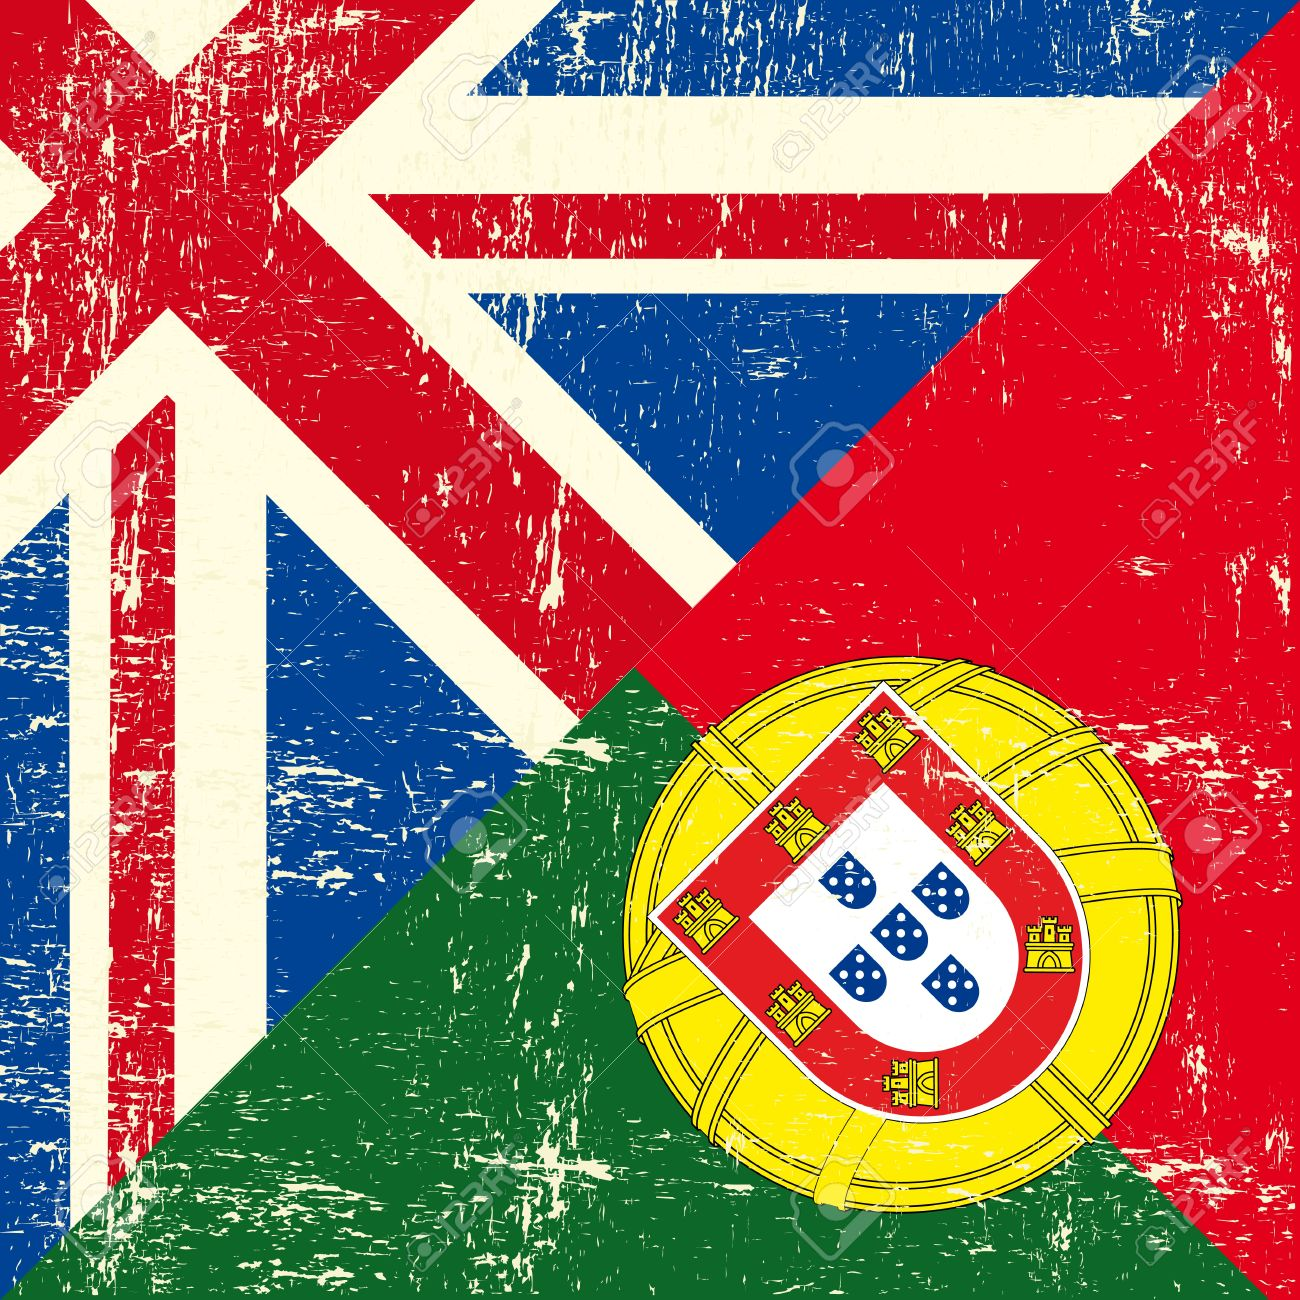 Brexit flag with Portugal and UK